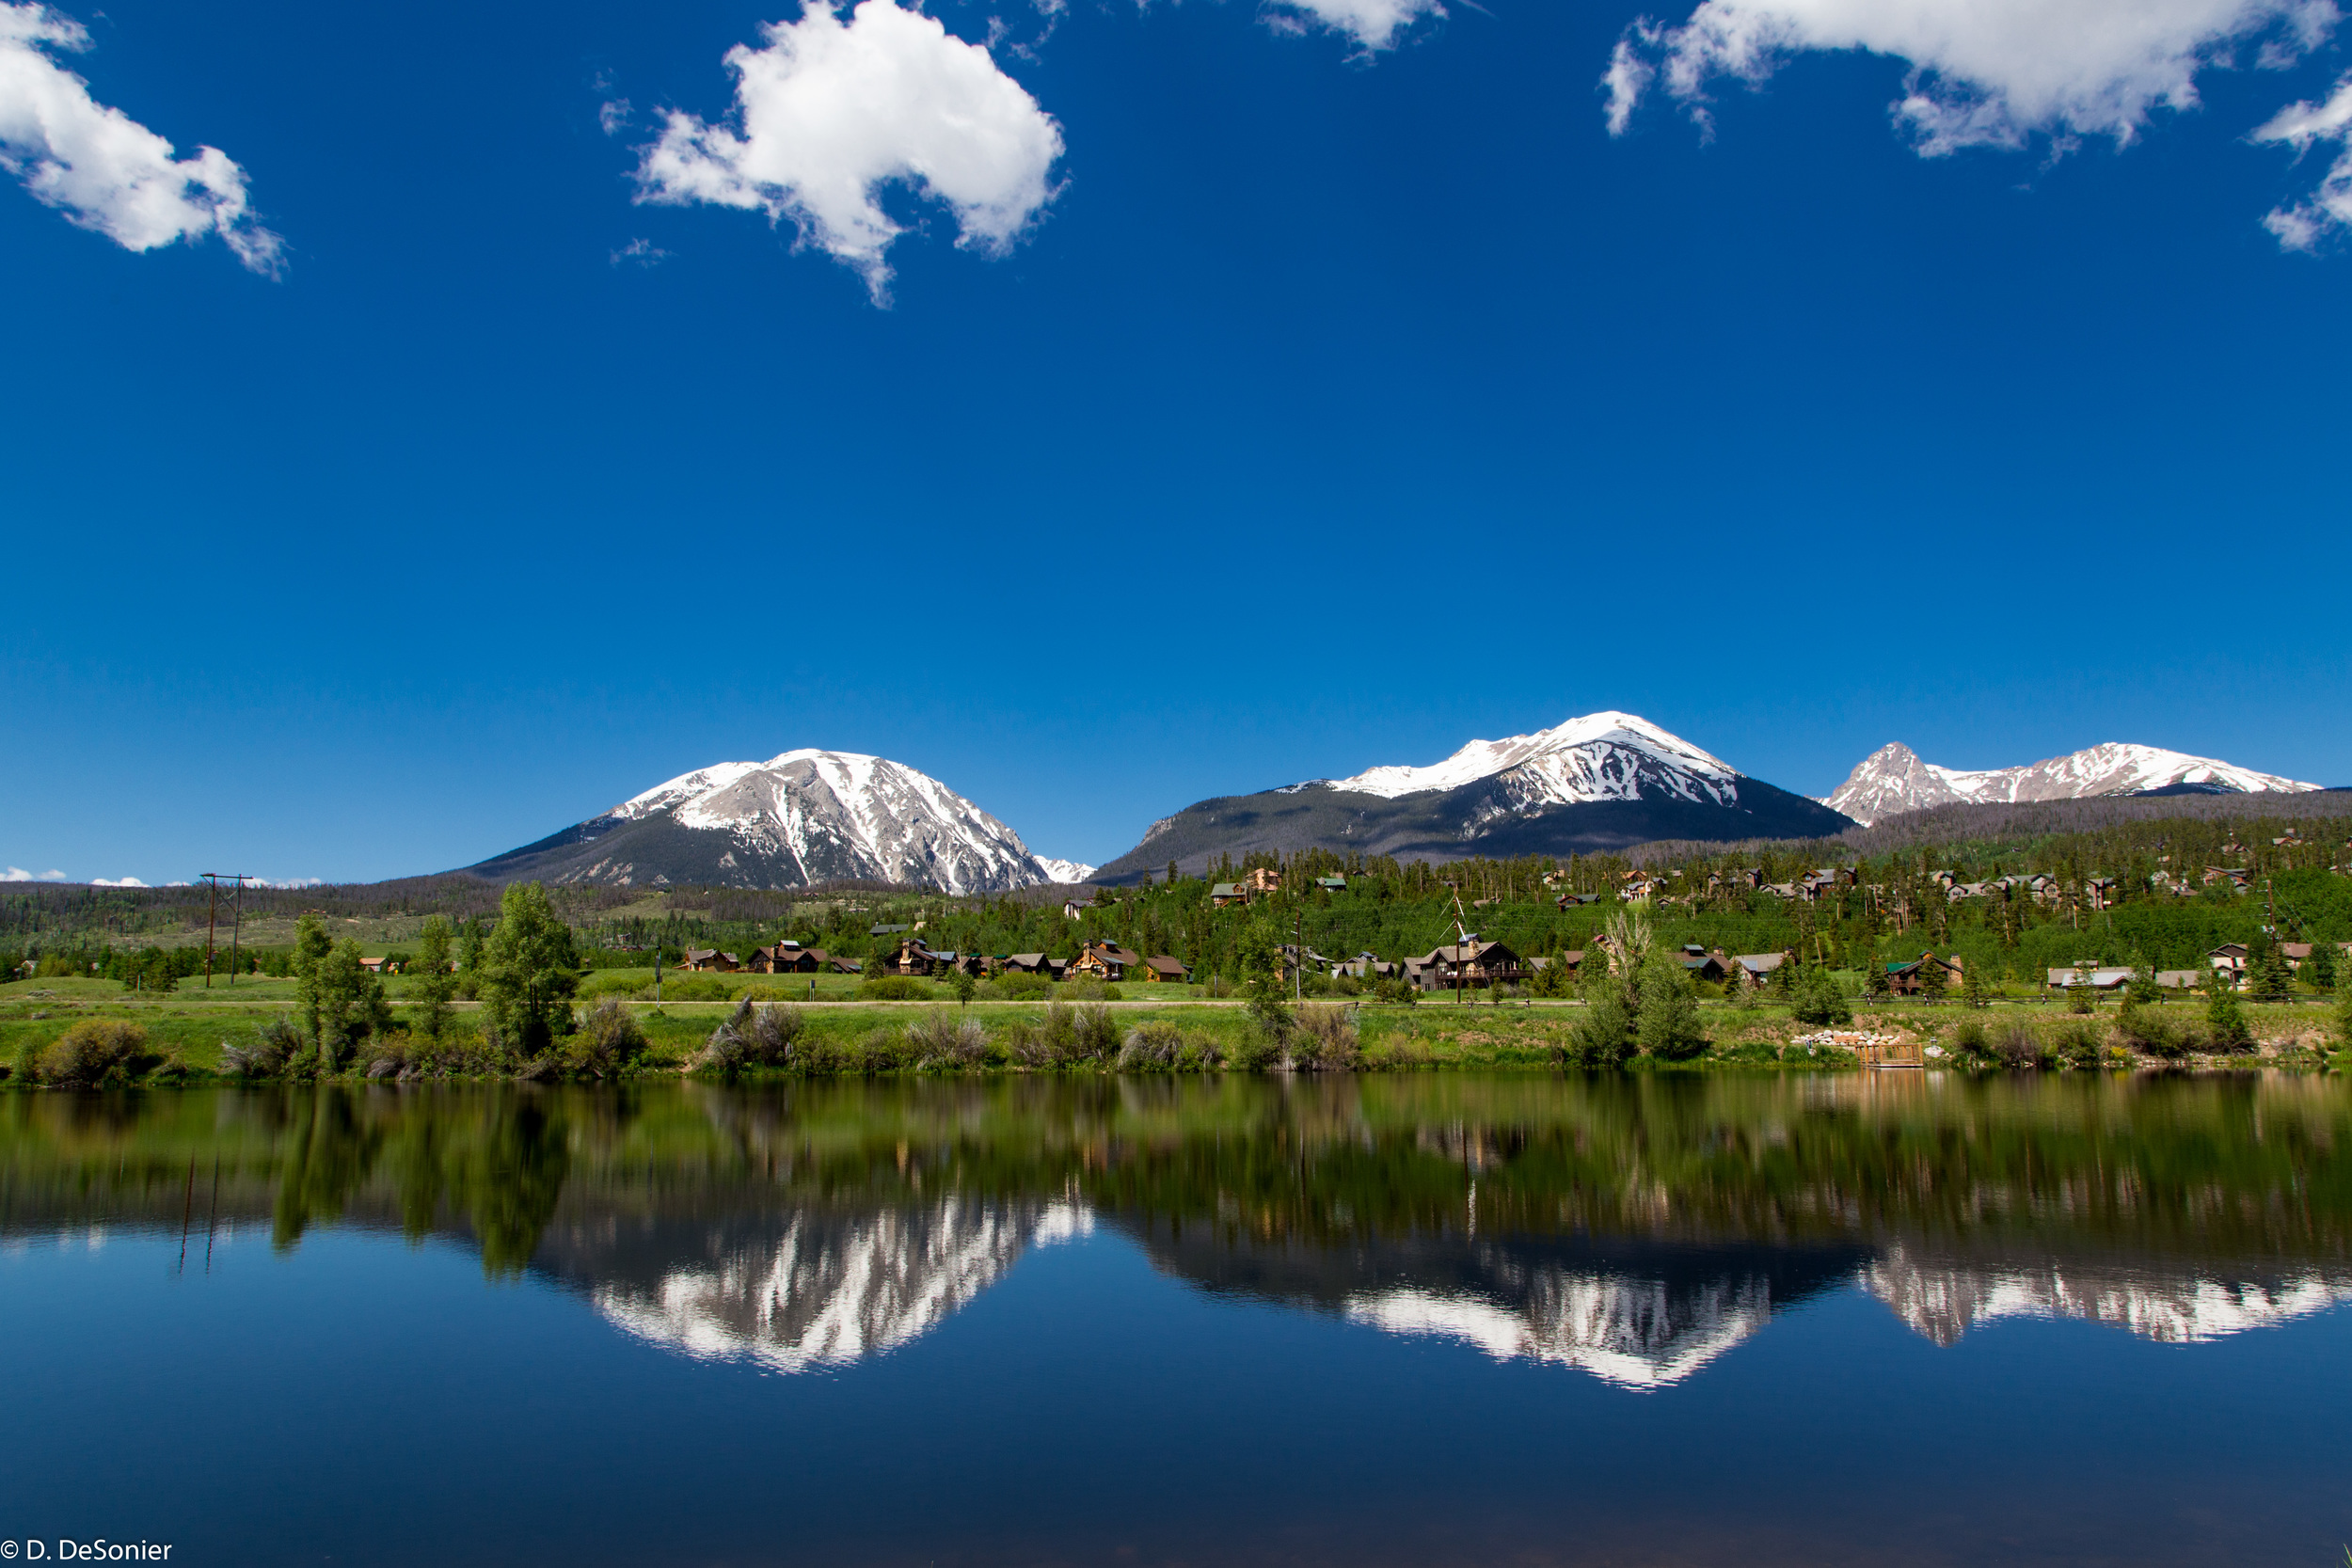 Buffalo Mountain from The Ponds in Silverthorne